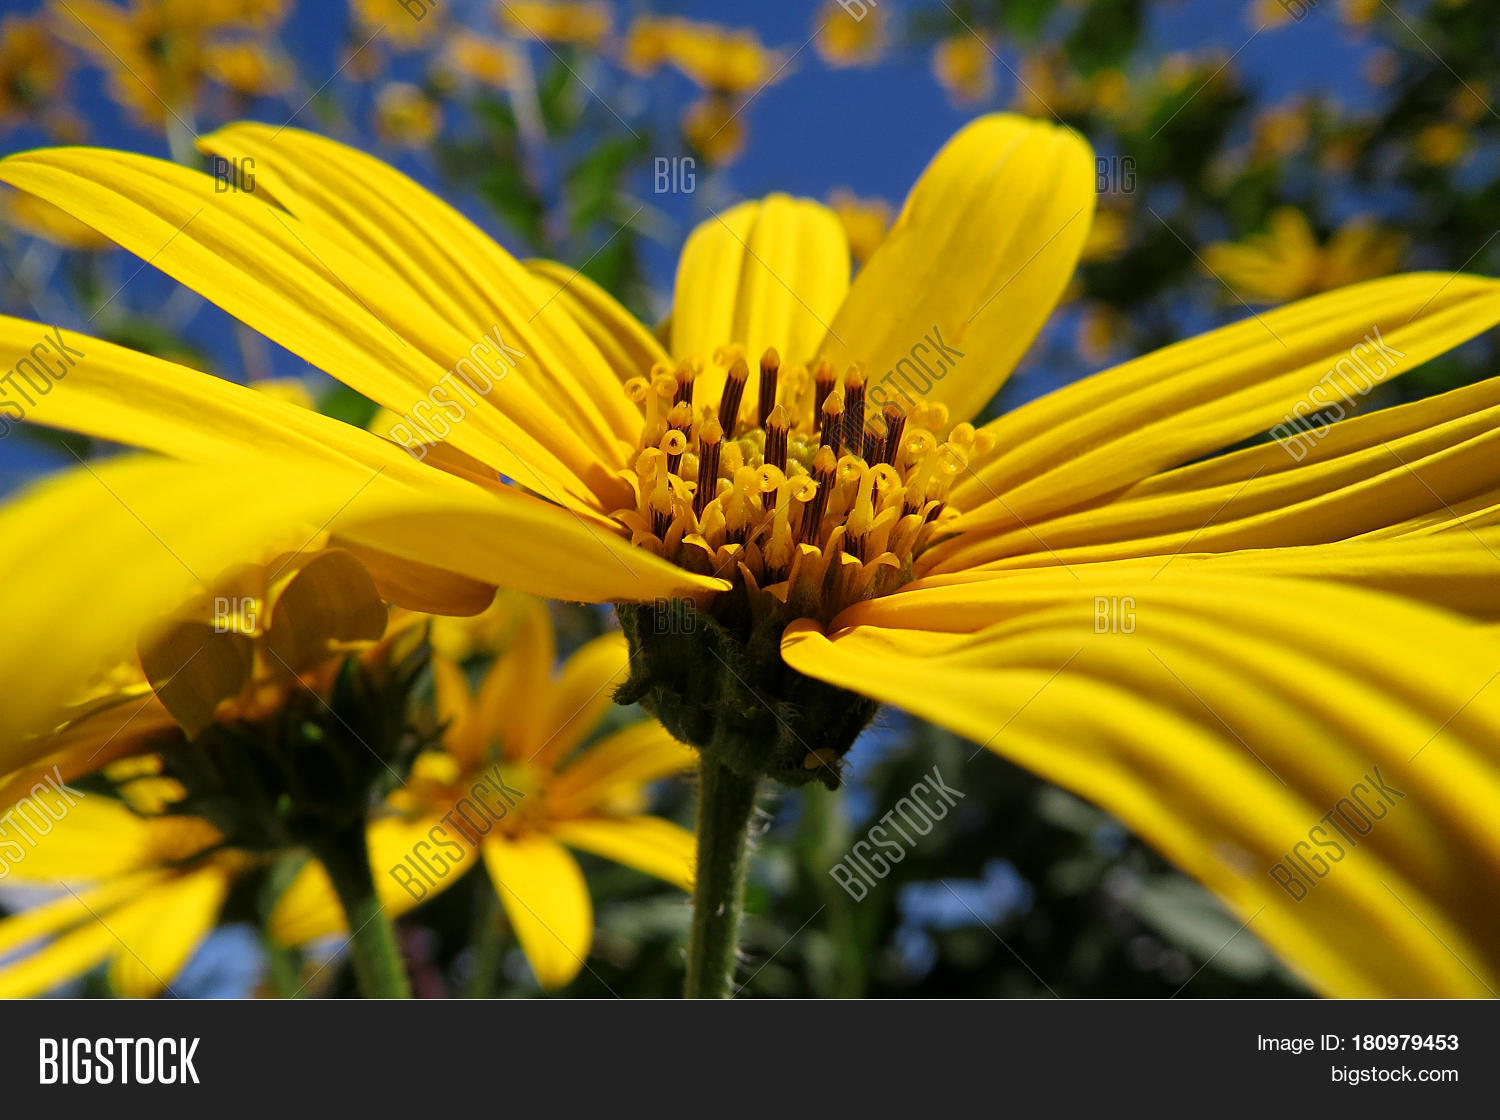 African Bush Daisy Image Photo Free Trial Bigstock